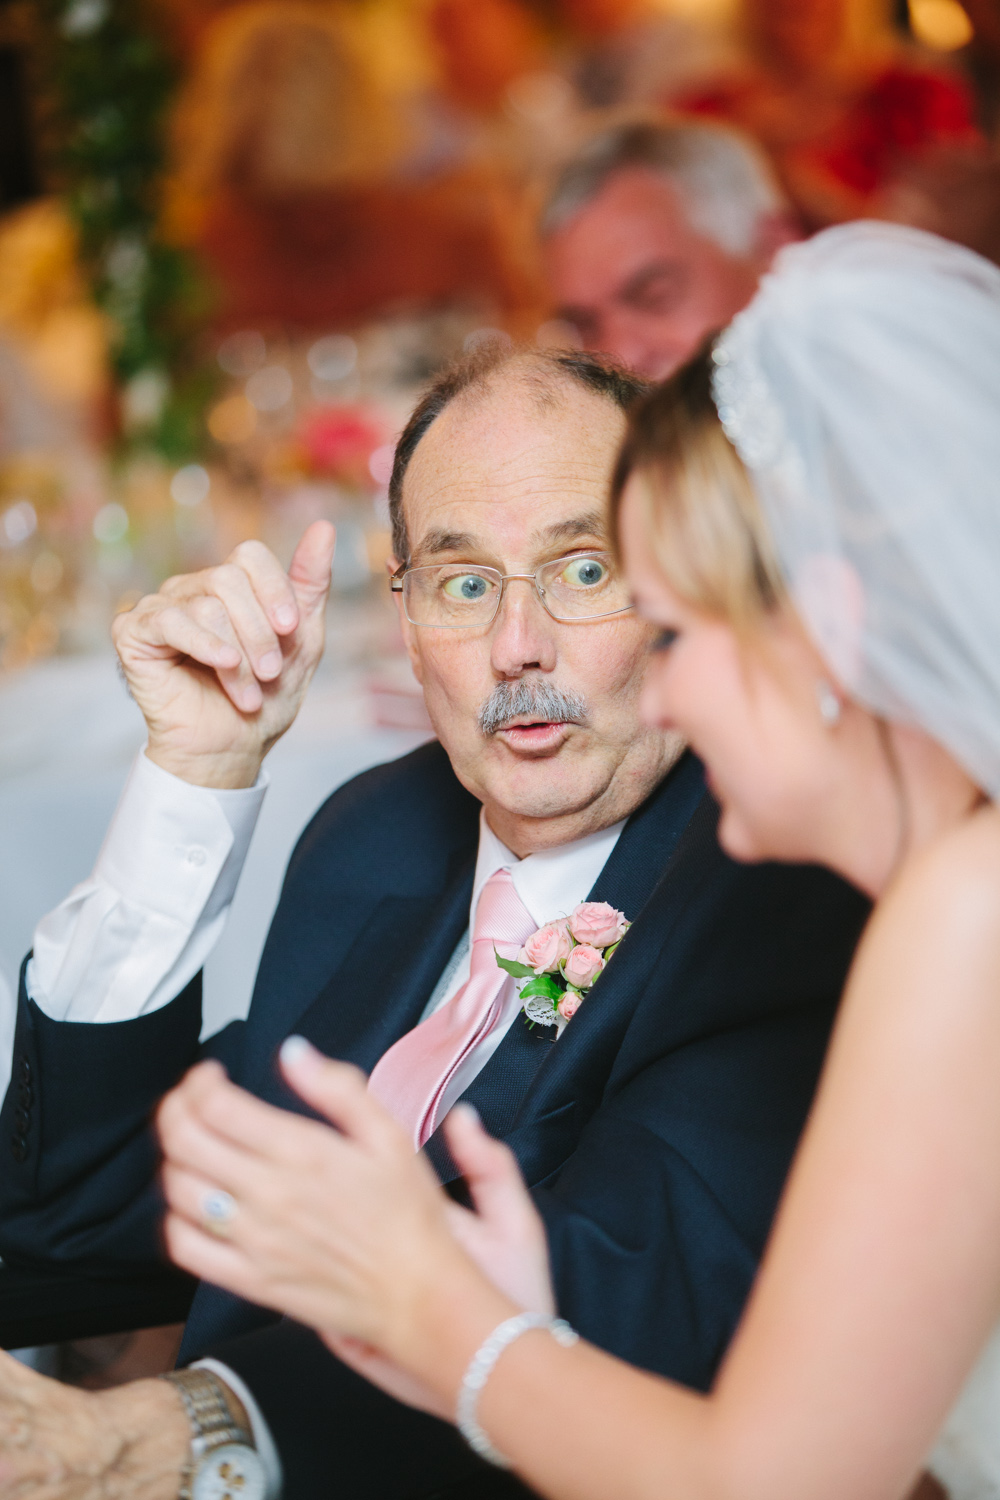 rmw-kate-holor-wedding-by-lee-allen-98-of-121